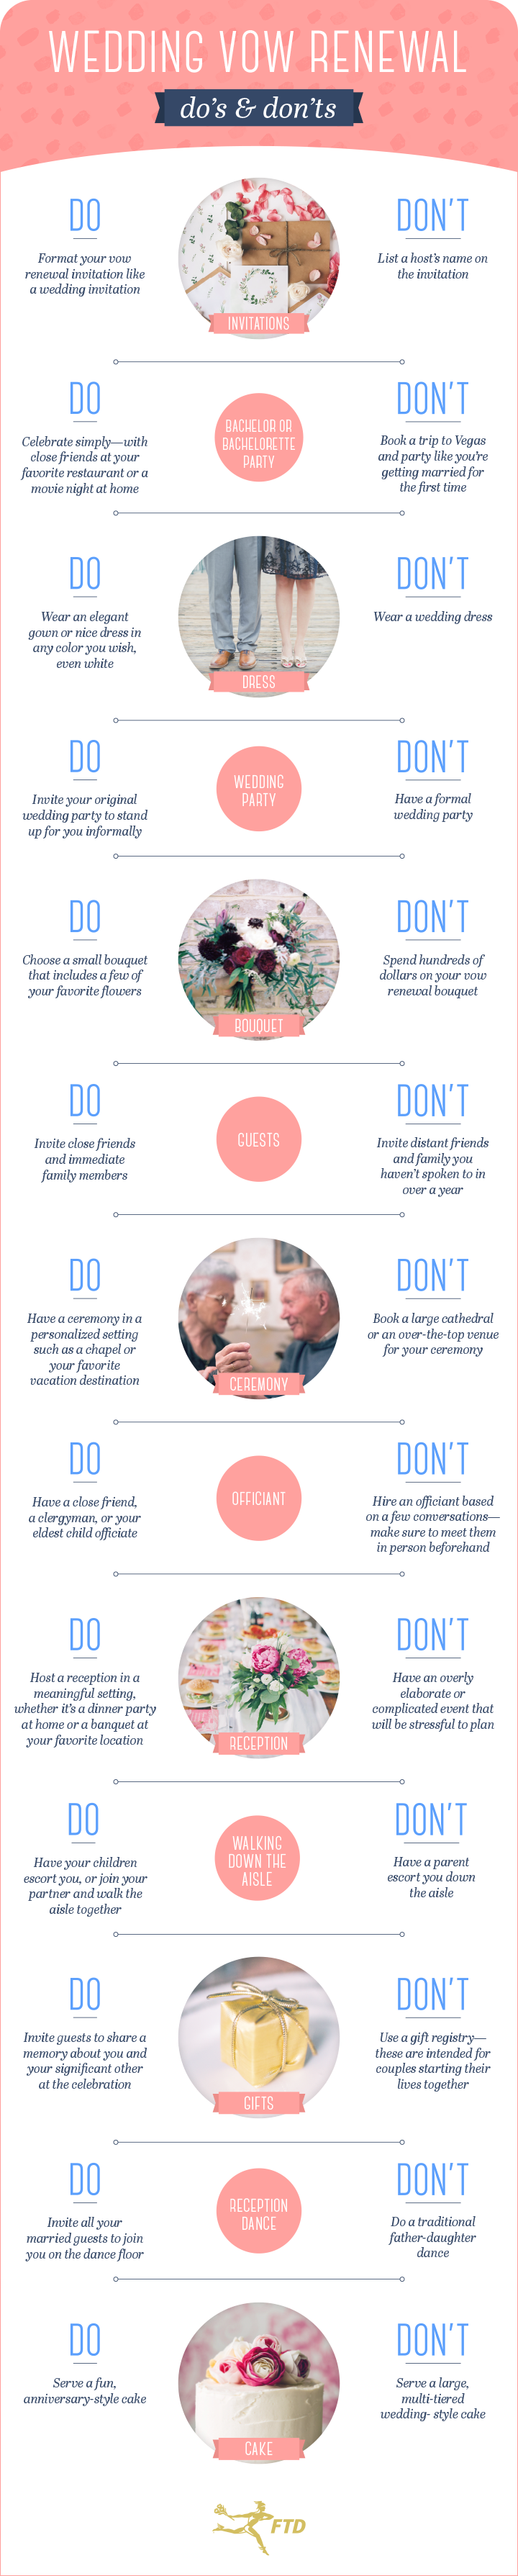 vow renewal guide infographic